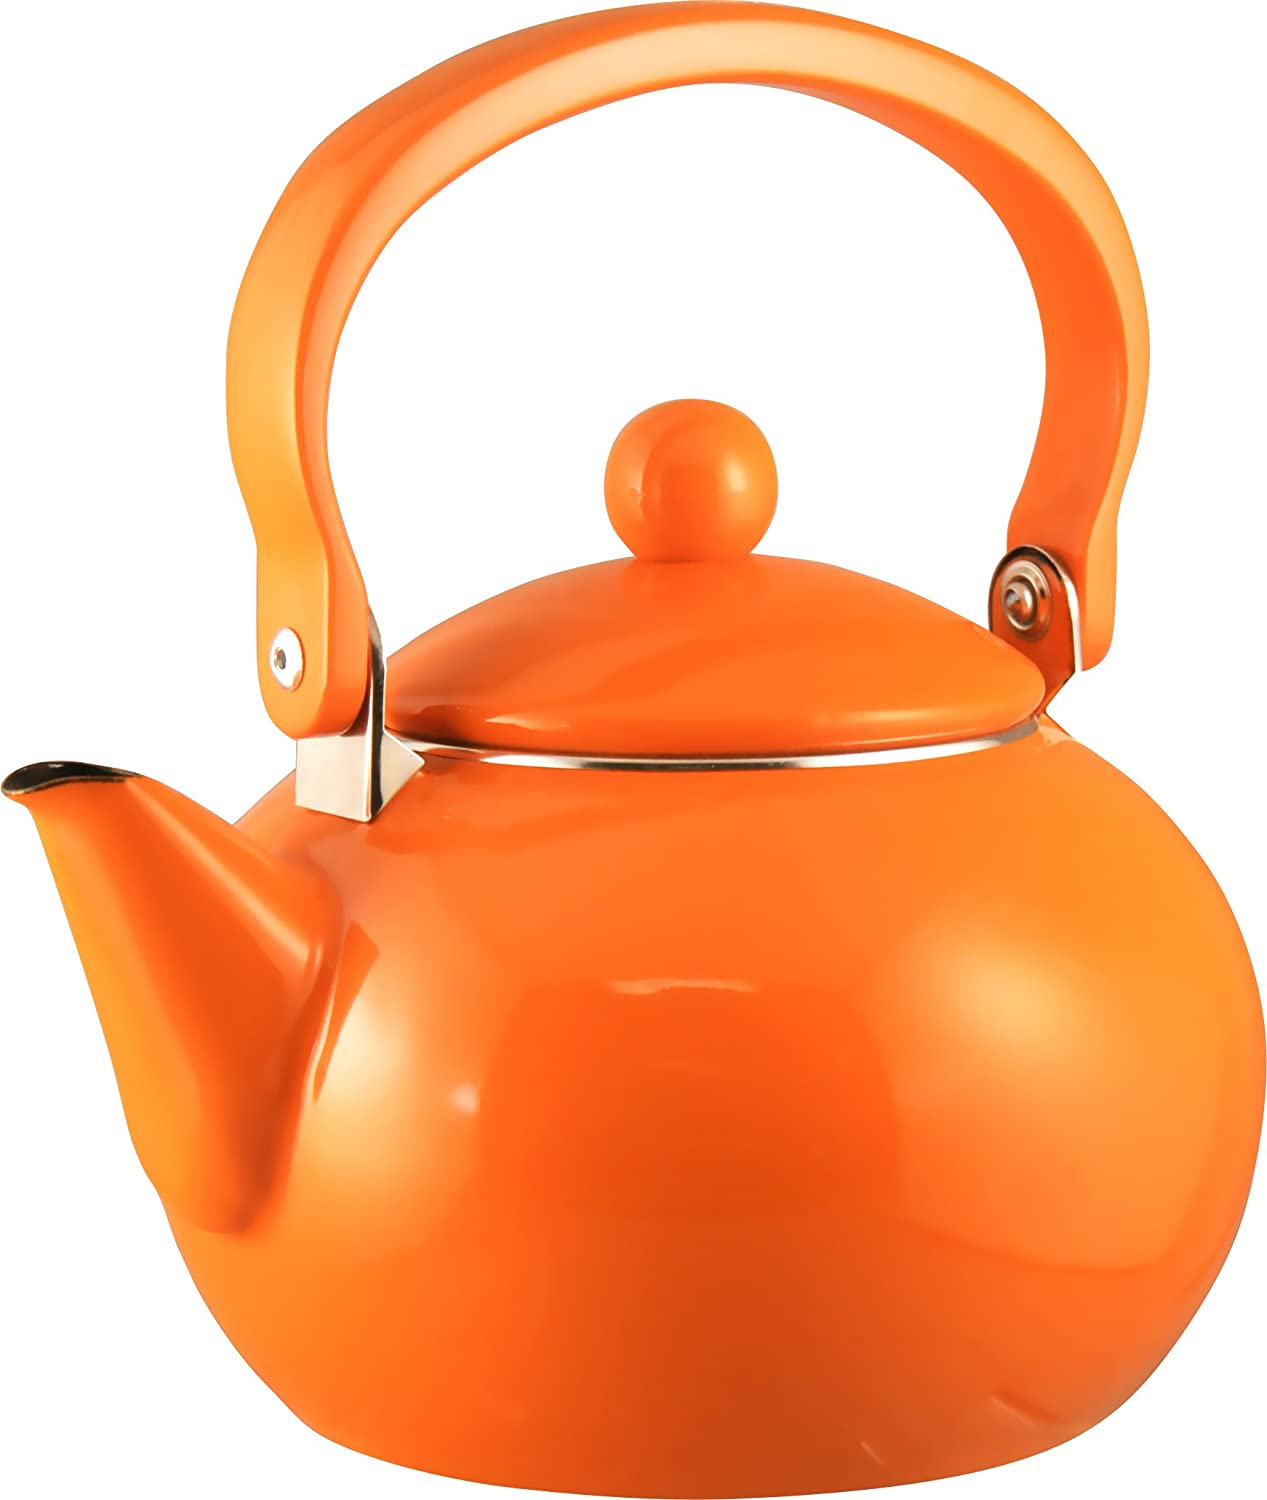 amazoncom calypso basics by reston lloyd enamelonsteel  - amazoncom calypso basics by reston lloyd enamelonsteel teakettlequart orange tea kettle orange kitchen  dining